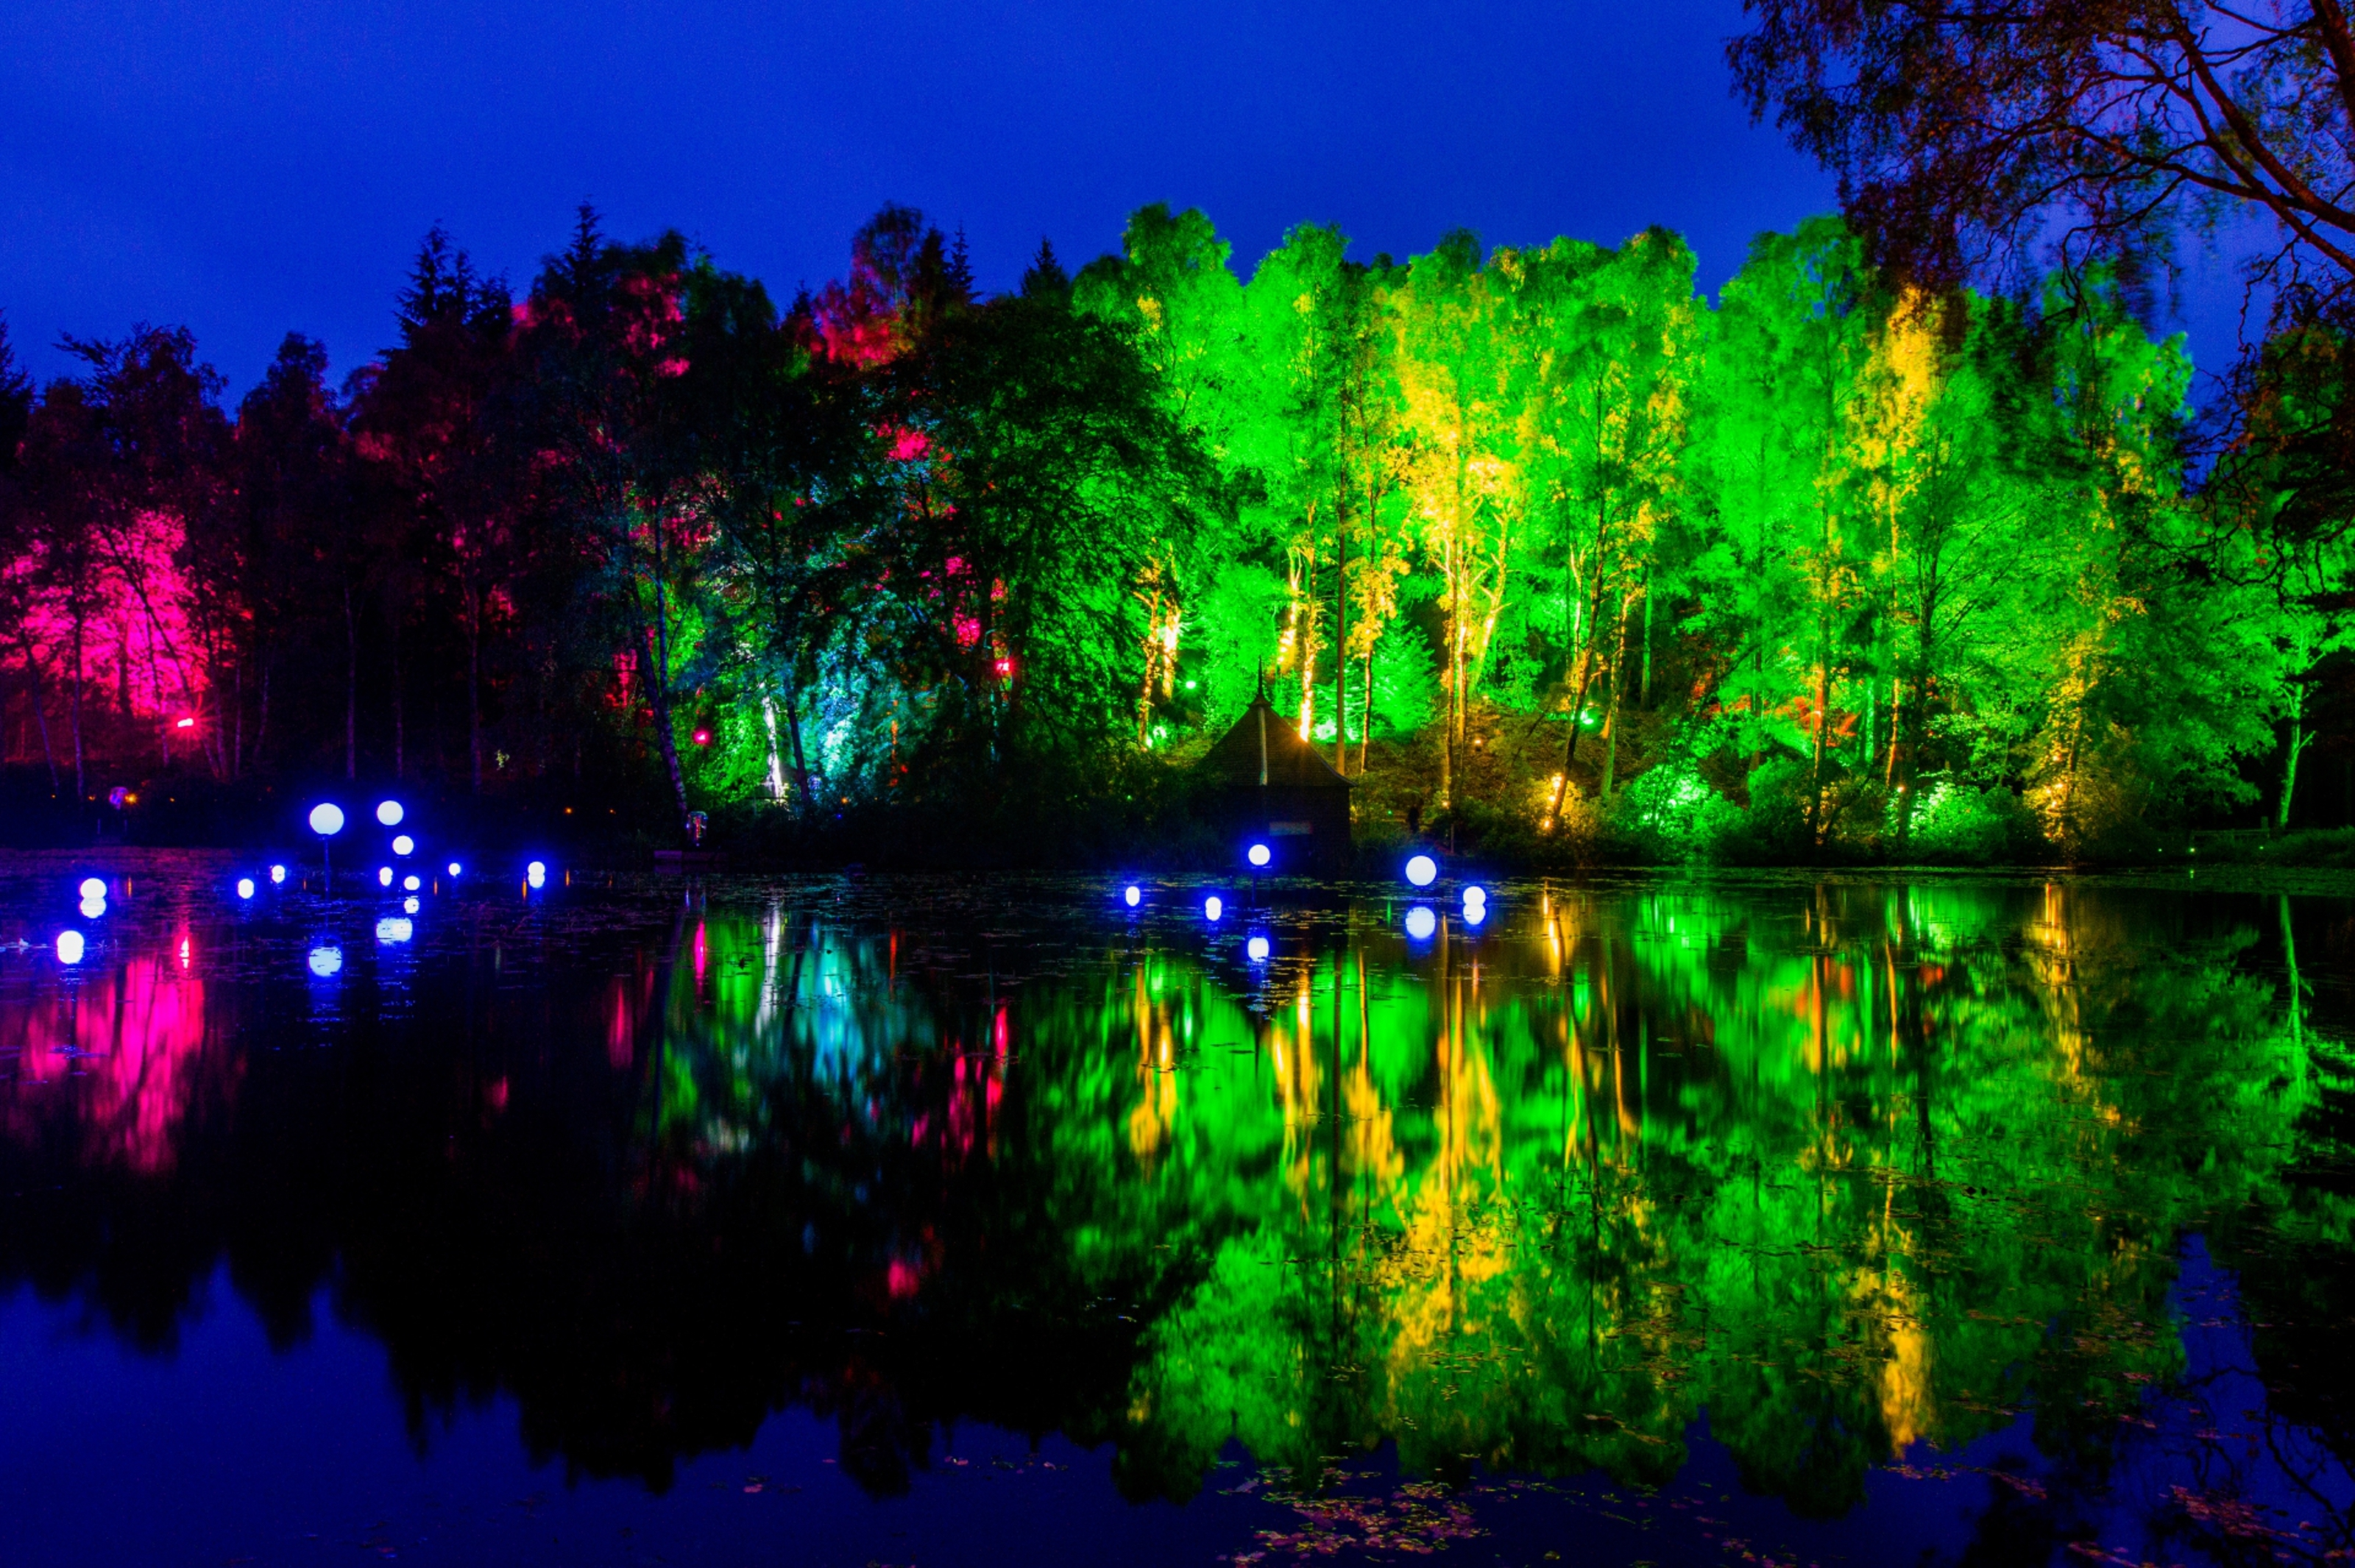 Steve MacDougall, Courier, Enchanted Forest, Faskally Woods, by Pitlochry. Scenes from the preview night. Pictured, view of the lit trees reflected in the water.